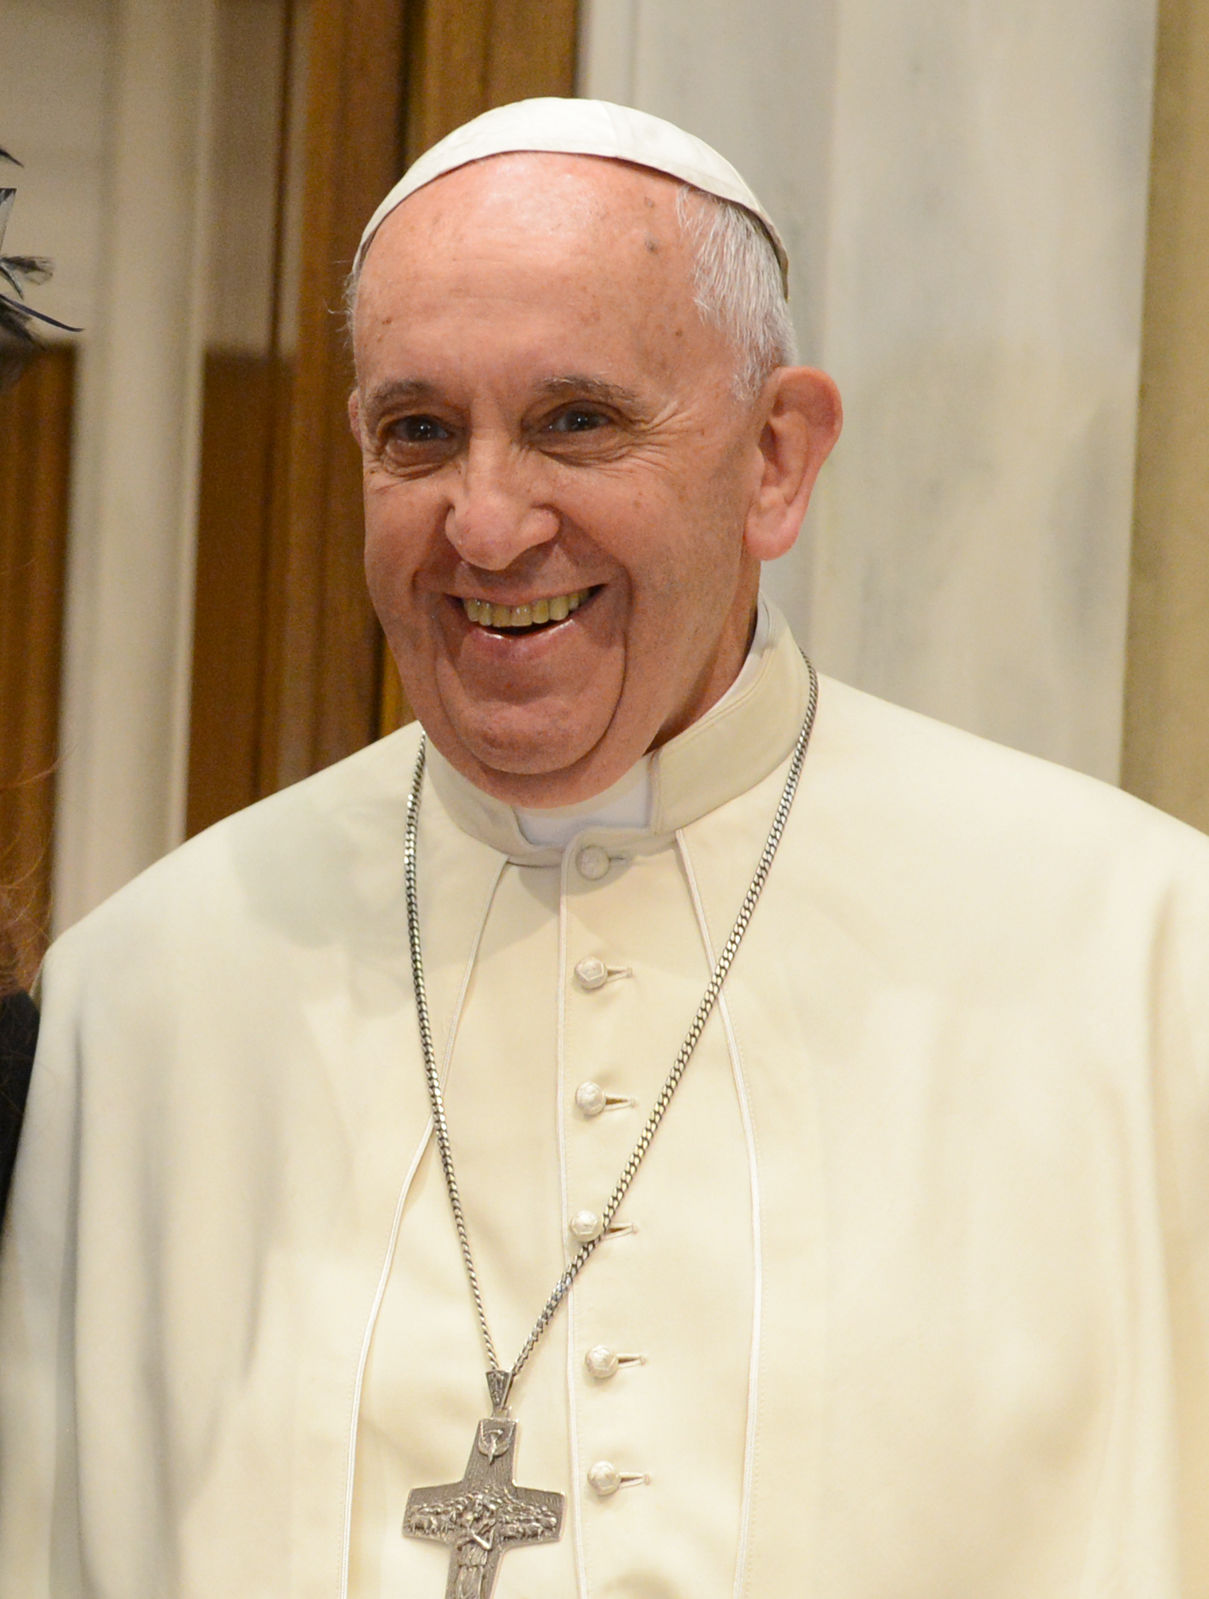 Photo of Pope Francis: 266th Pope of the Catholic Church